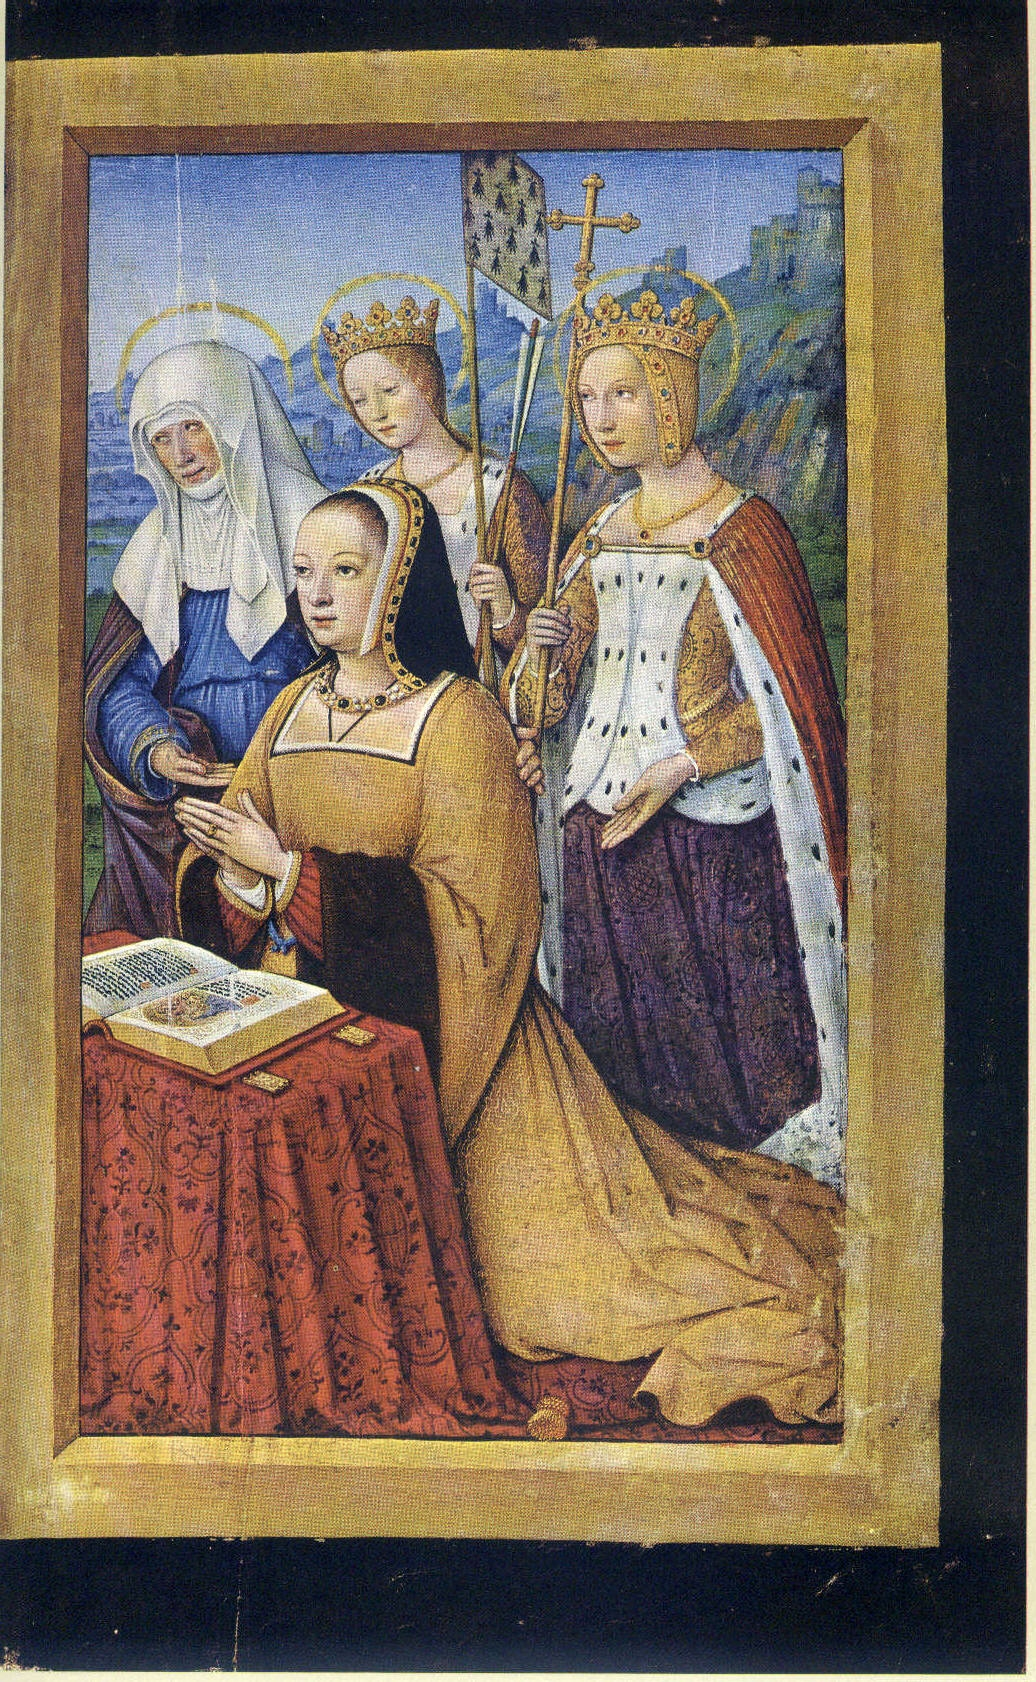 1500 - 1508 Hours of Anne of Bretagne - by Jean Bourdichon -